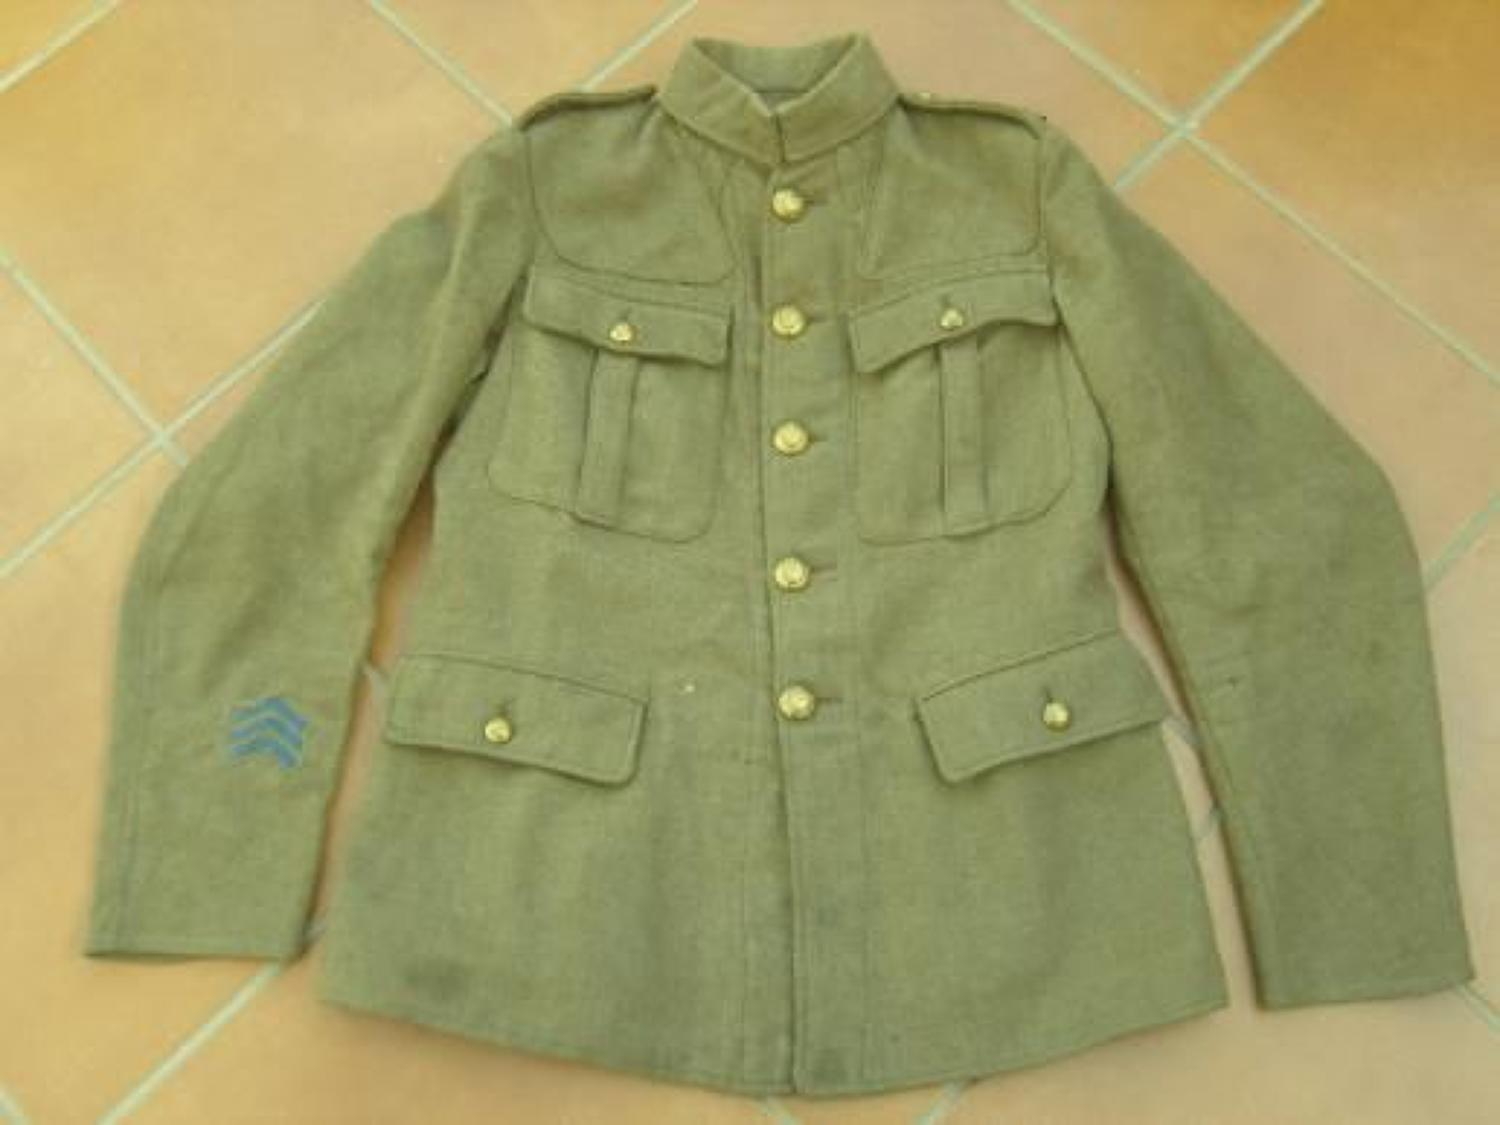 WW1 BRITISH OTHER RANKS TUNIC TO THE ROYAL ENGINEERS